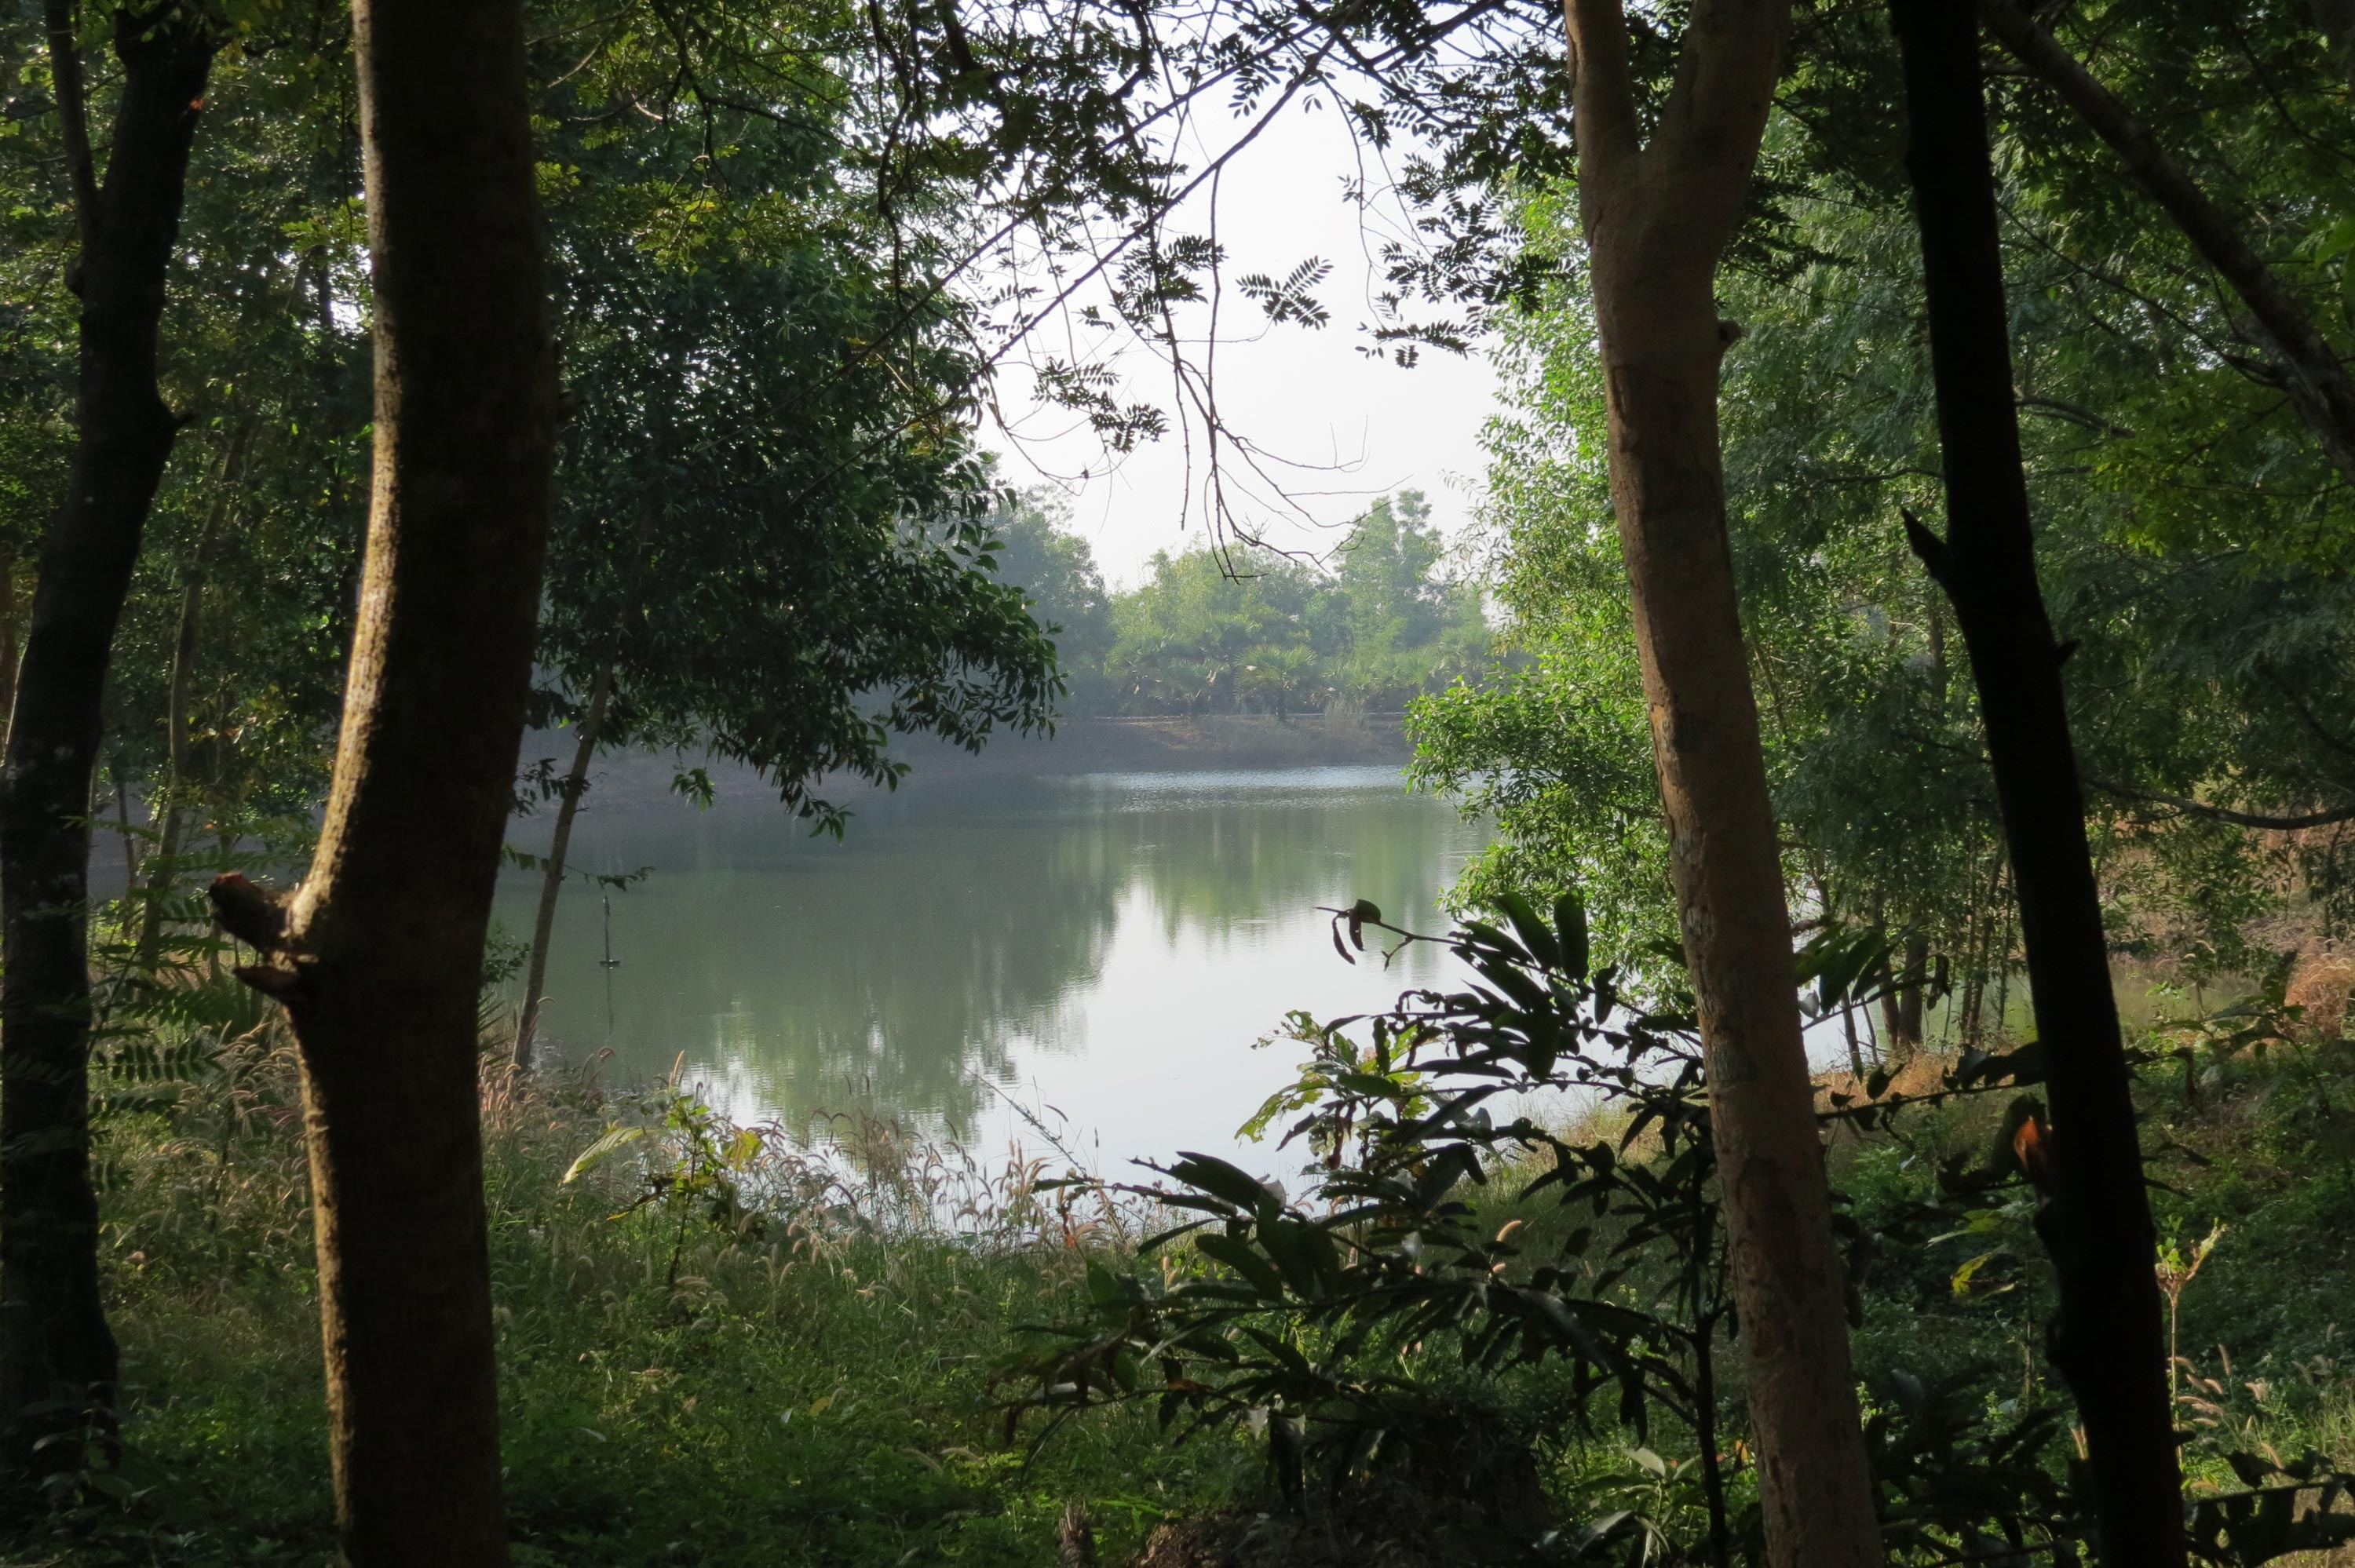 A scenic view of Panditarama Forest Center